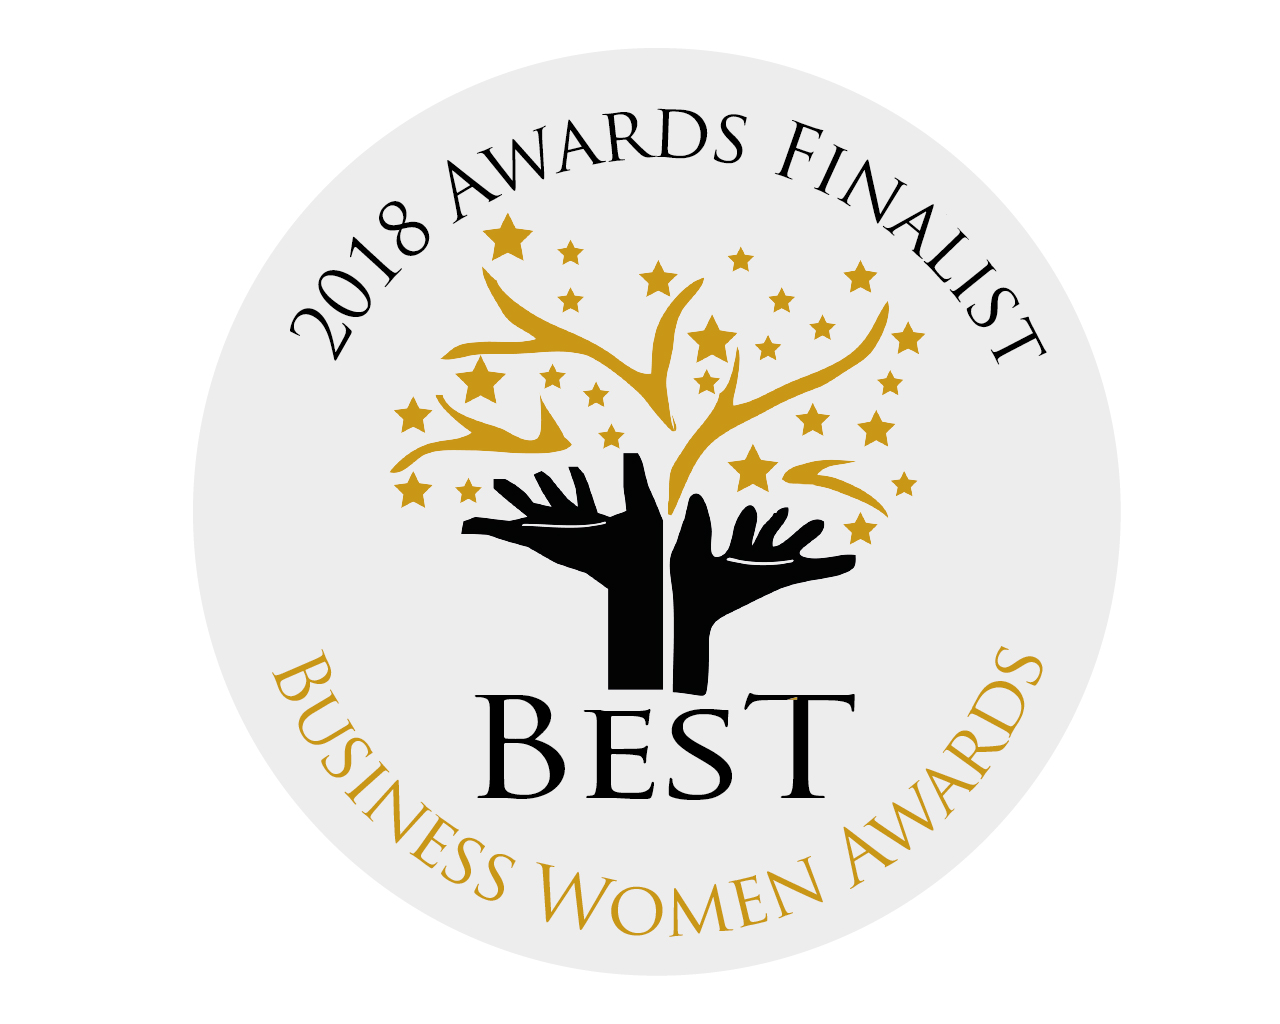 We're an award finalist for 'Best Franchisor' at the BEST Business Women Awards!